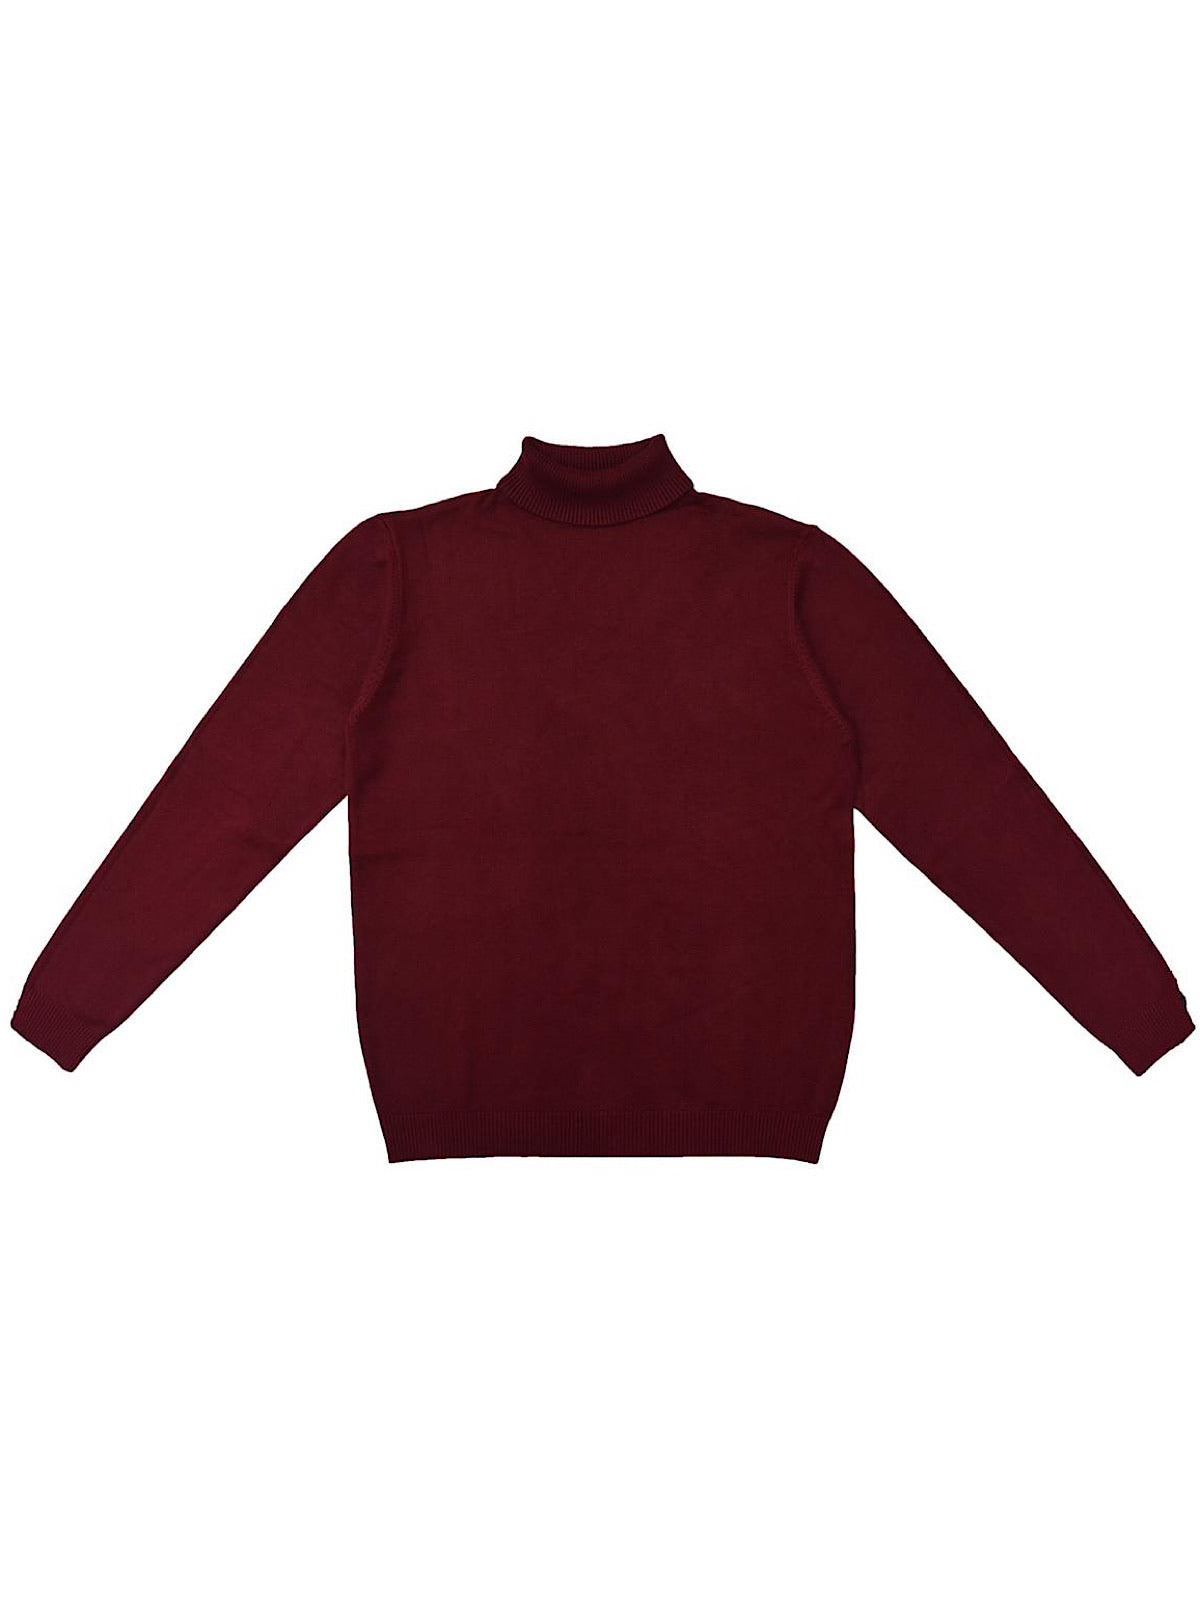 Xray Sweater - Turtleneck - Burgundy Oxblood